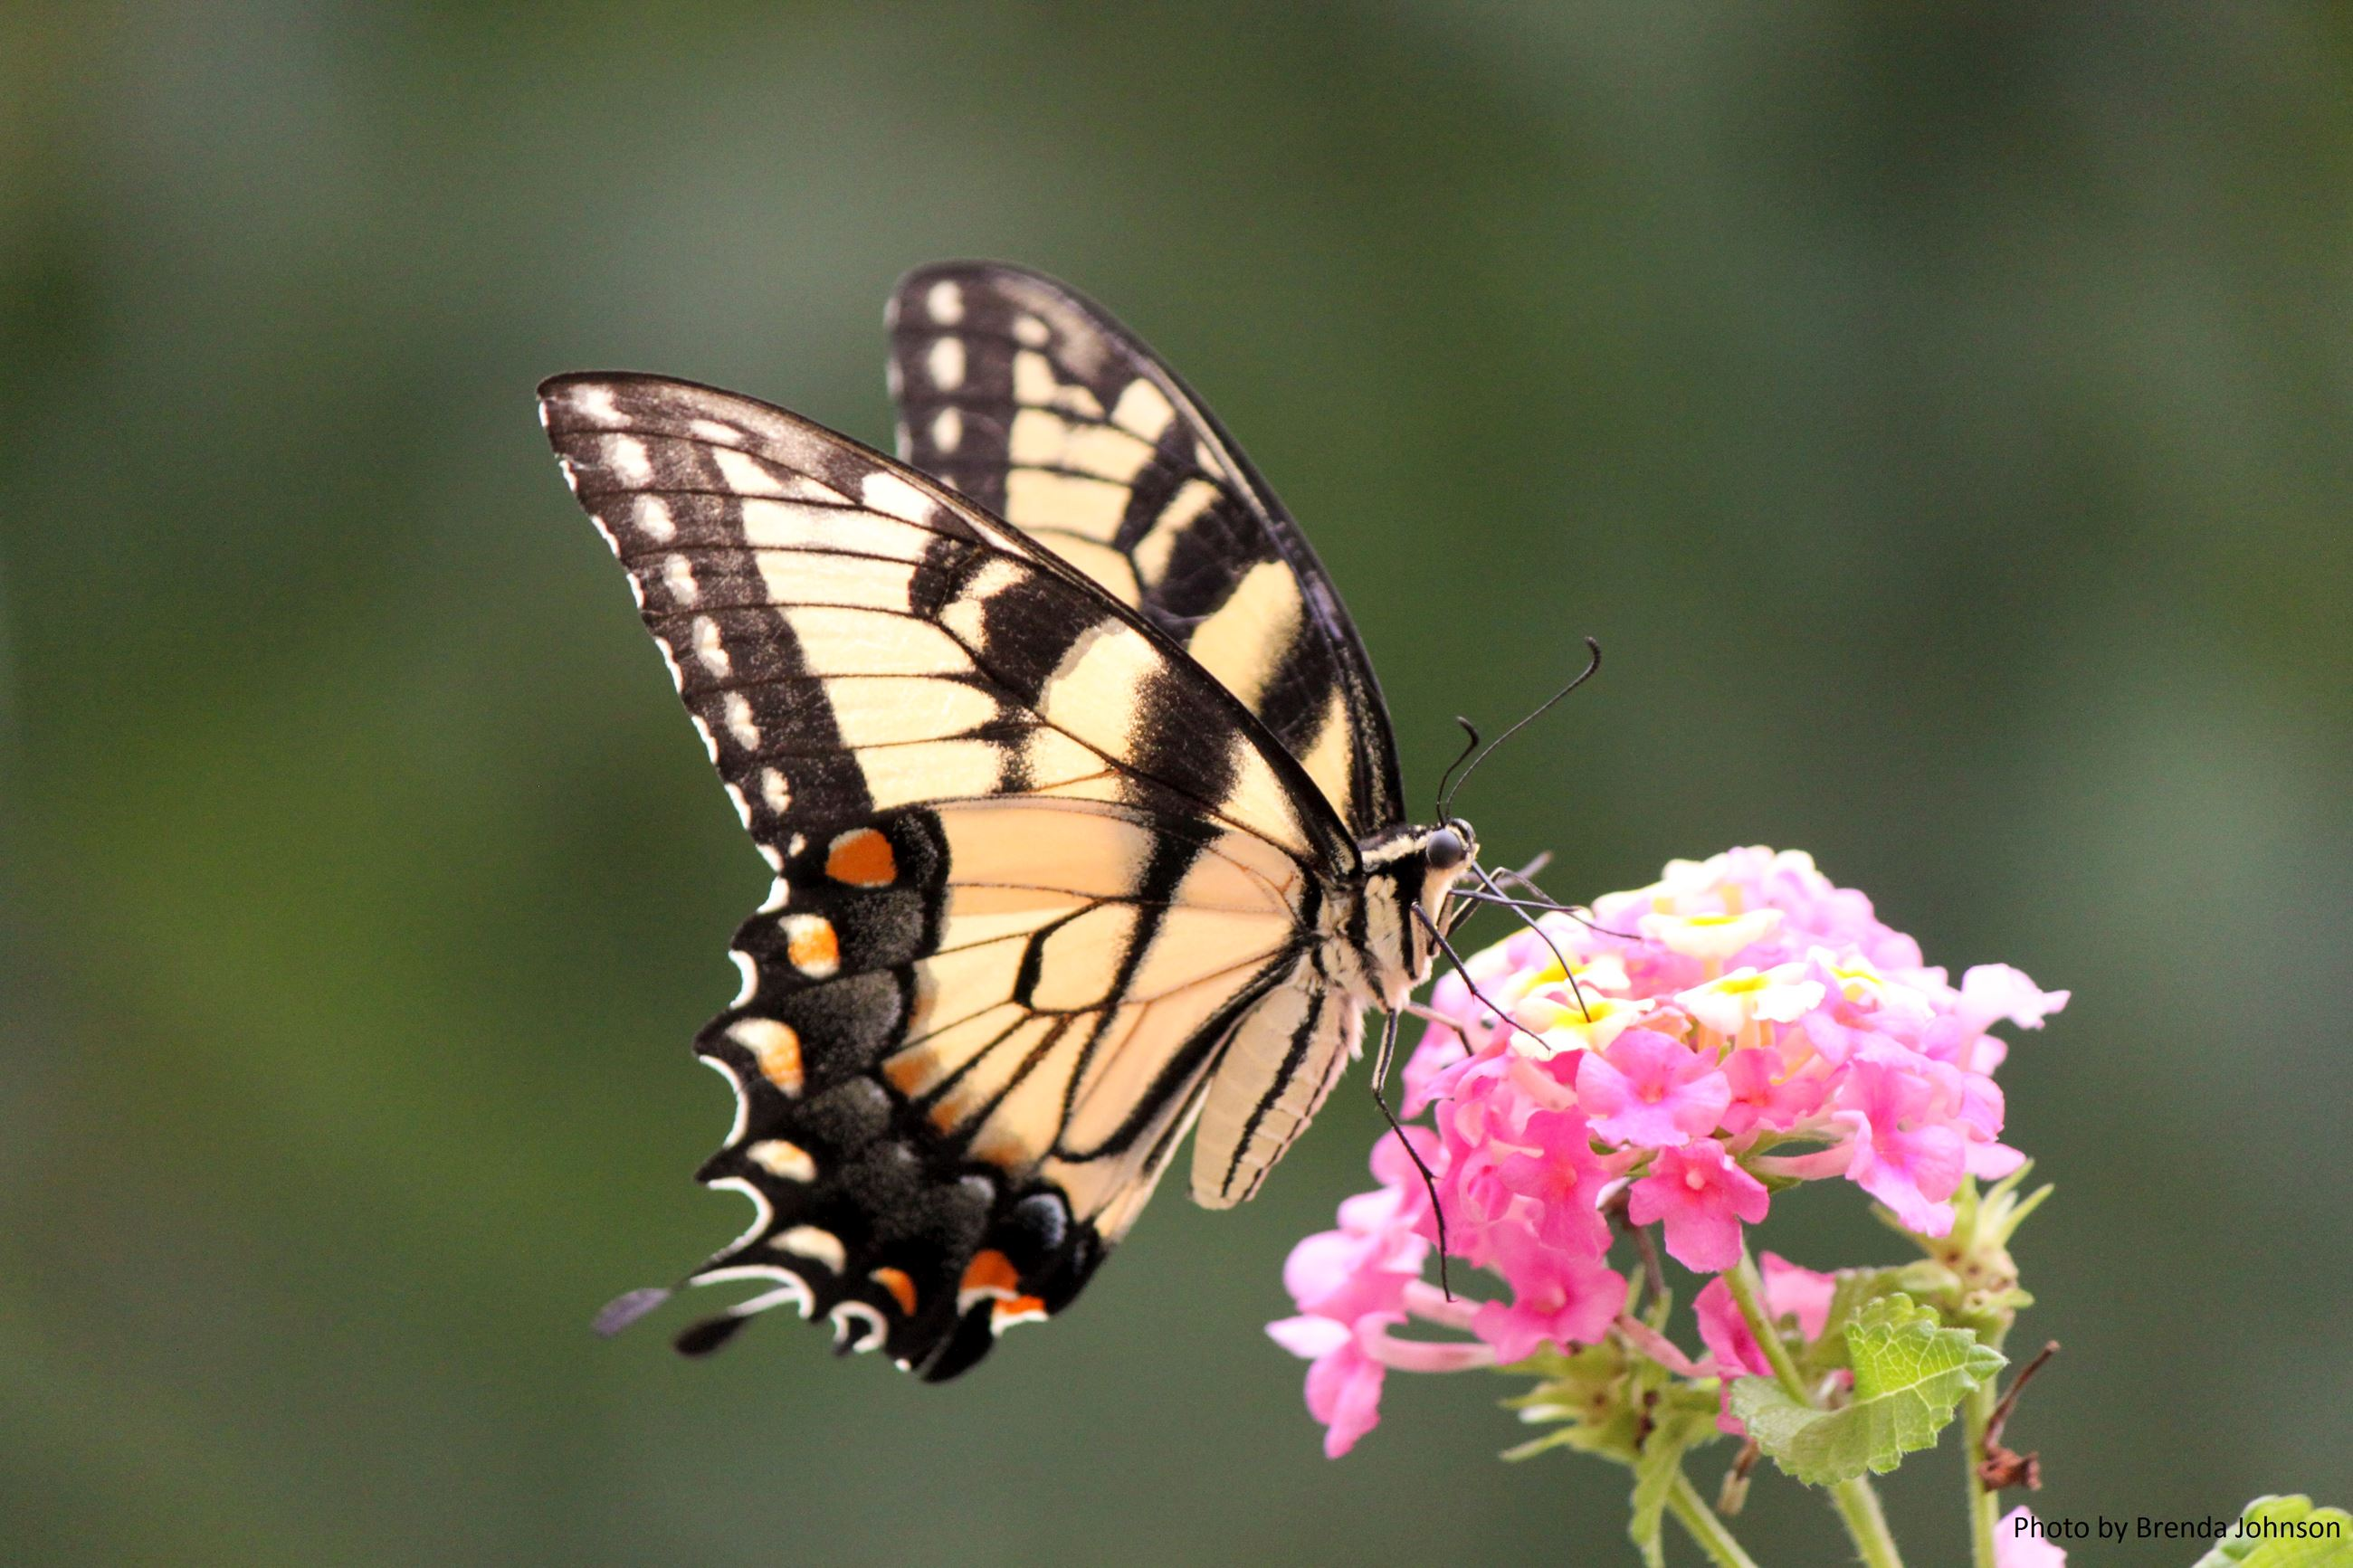 insect-butterfly-eastern-tiger-swallowtail-maryland-brenda-johnson (1)